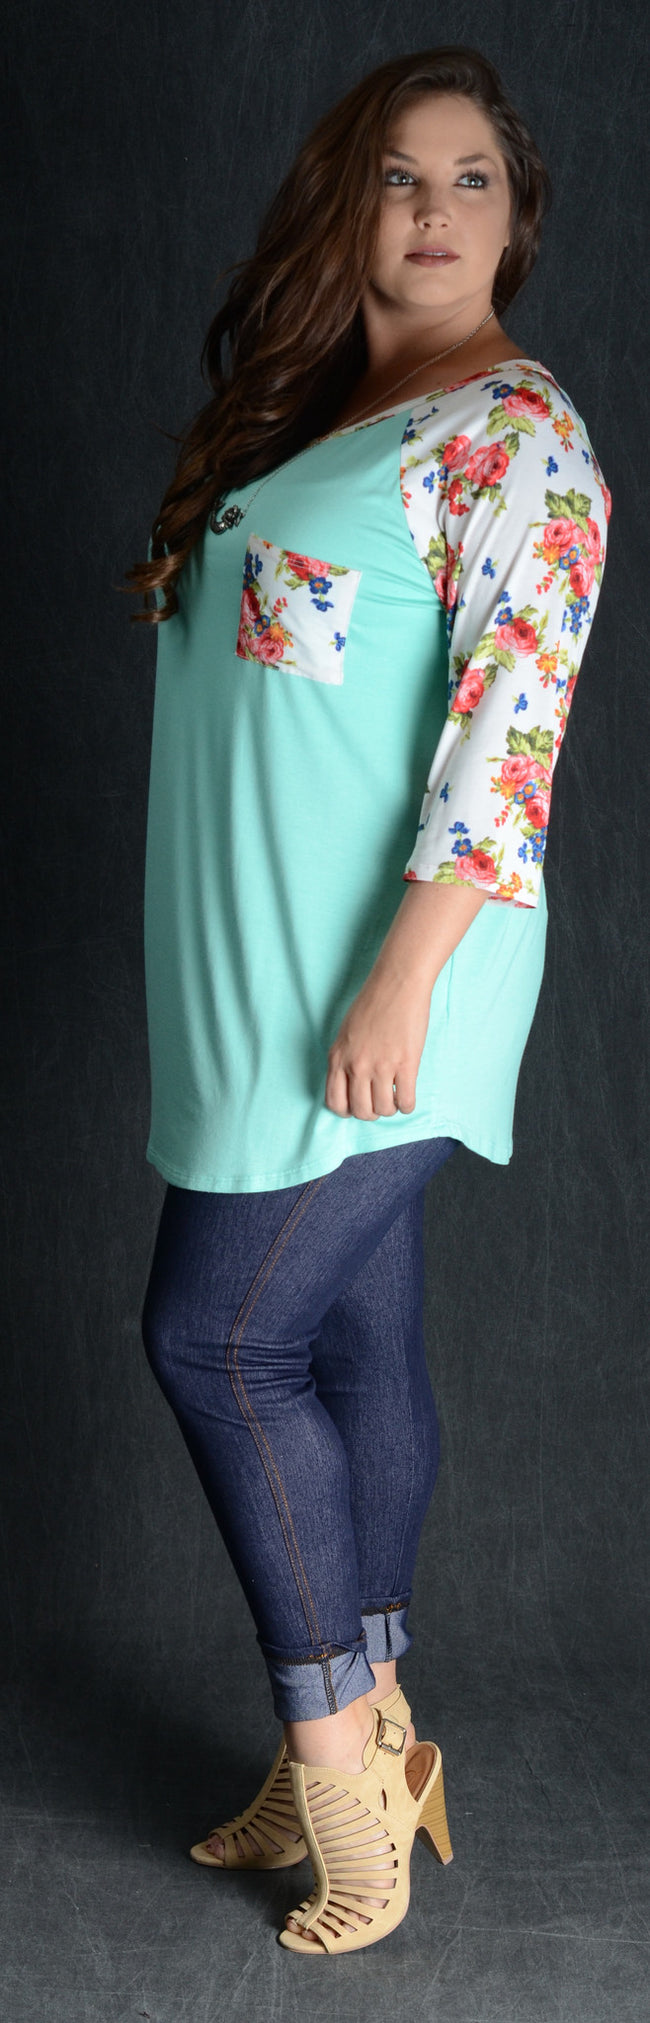 Mint Floral Contrast Top - www.mycurvystore.com - Curvy Boutique